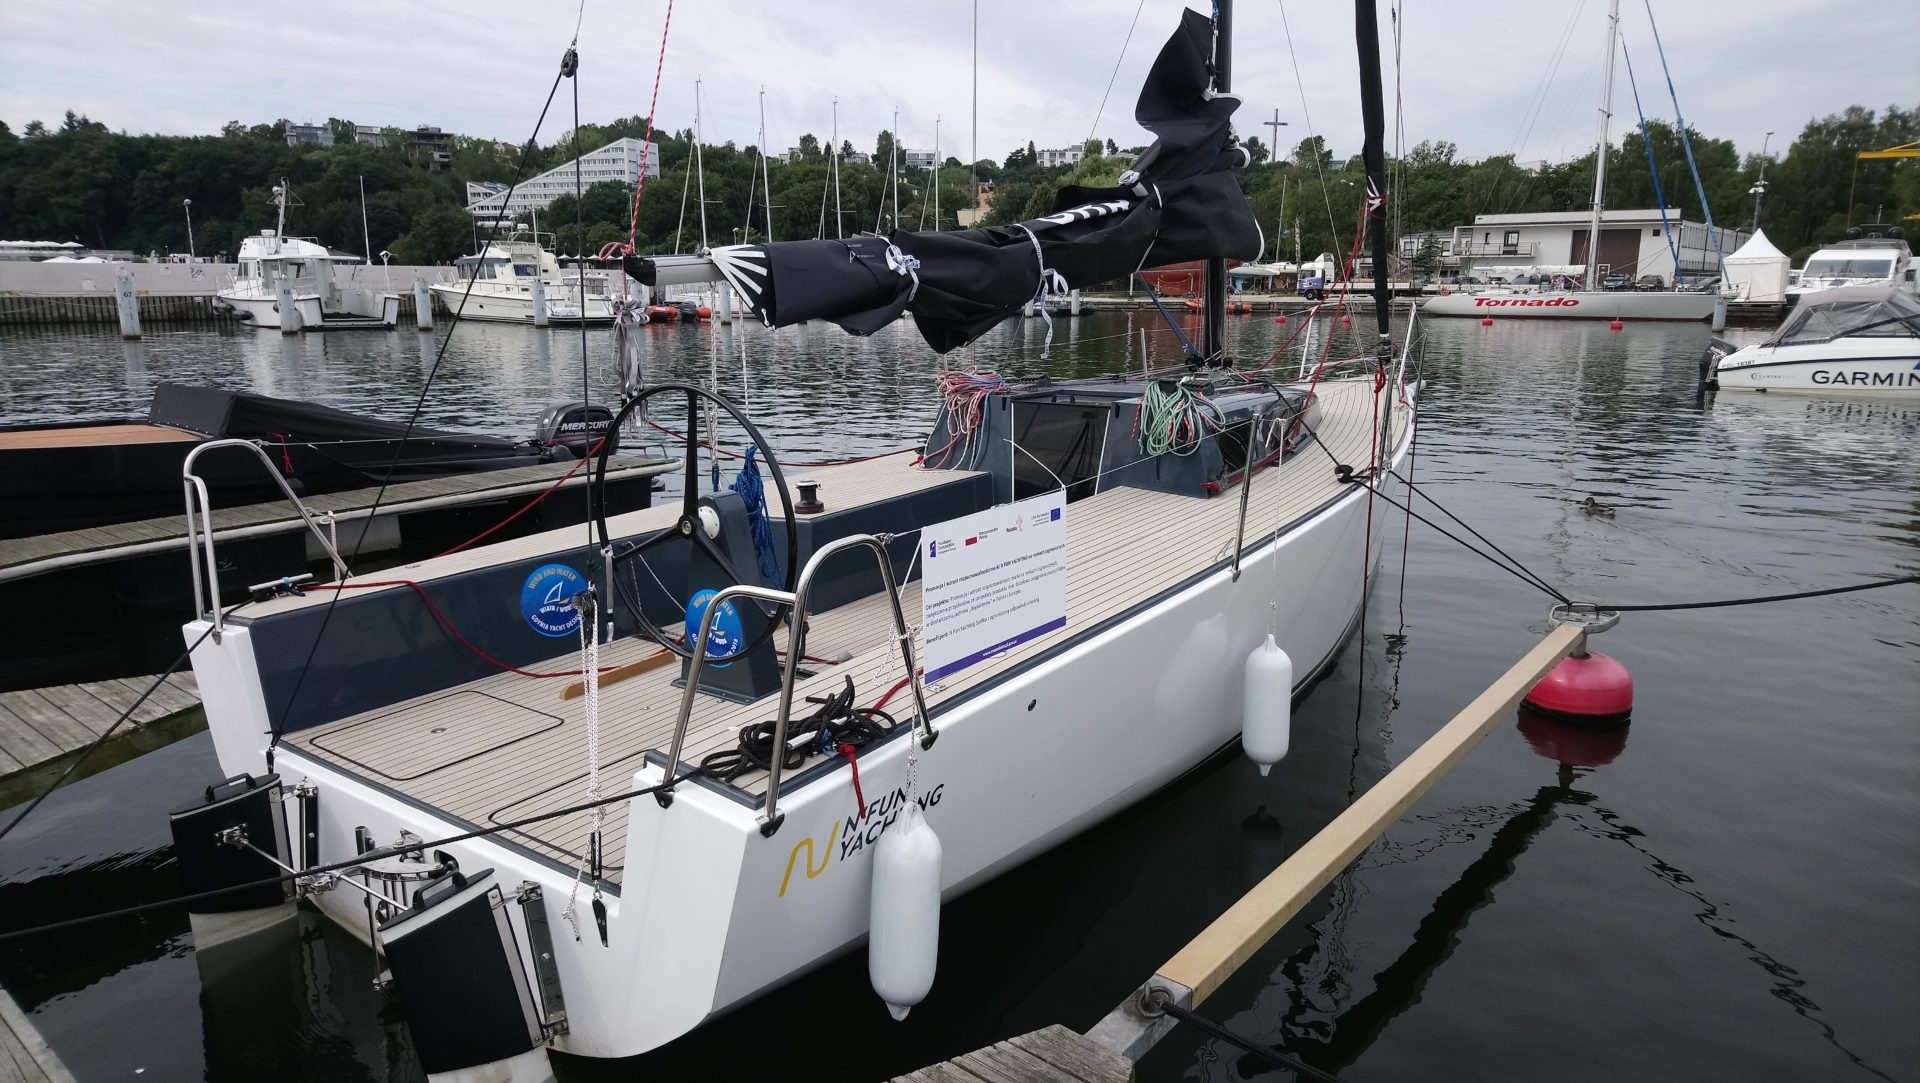 N Fun 30 wins the first prize for the best sailing yacht design.